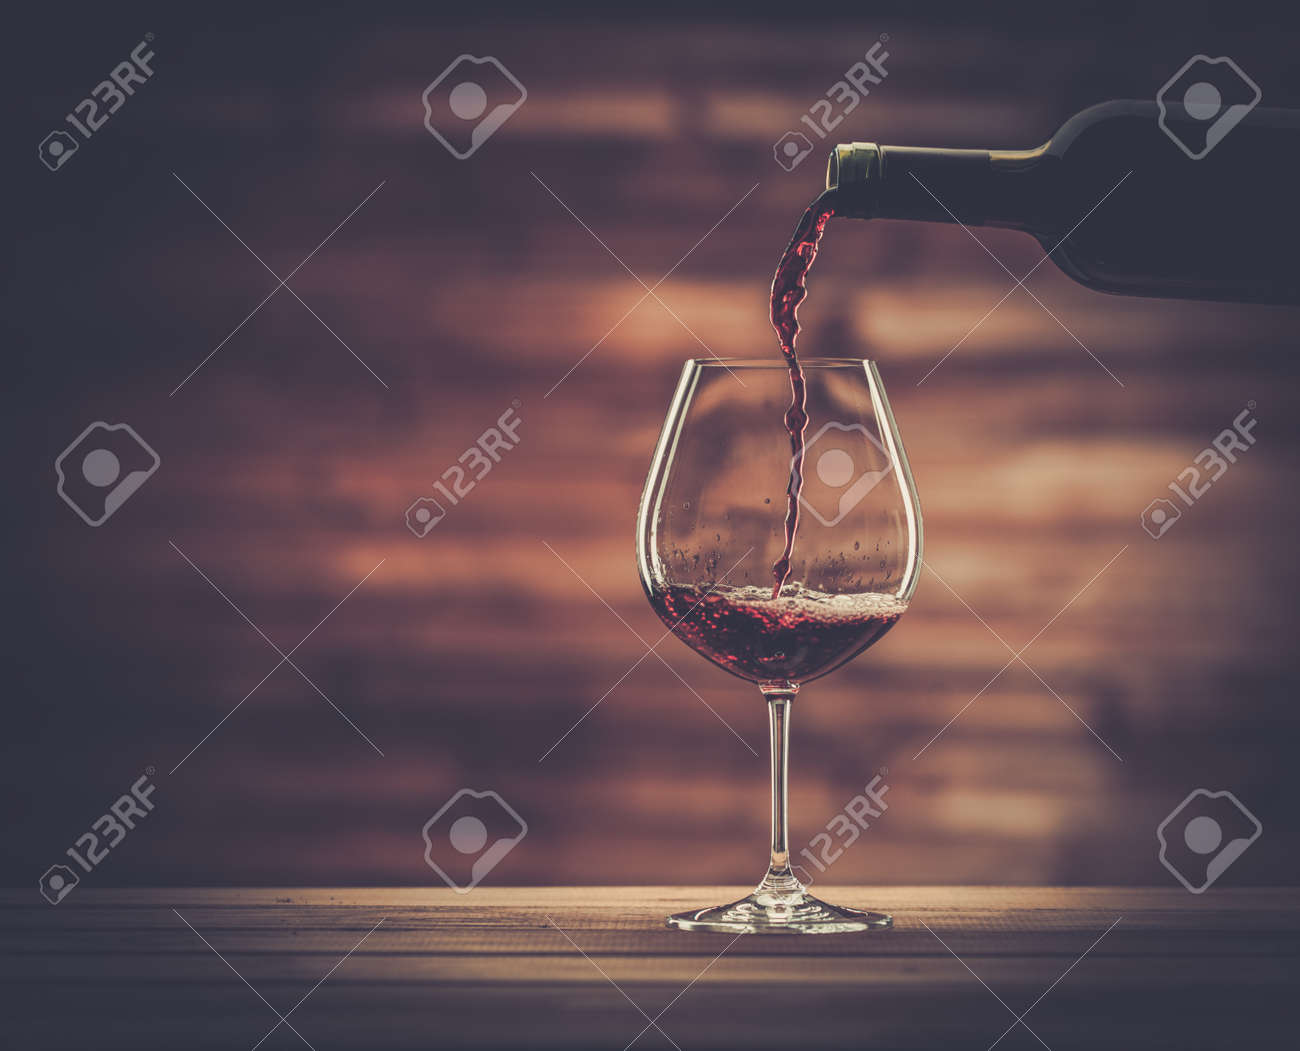 Pouring red wine into the glass against wooden background - 33958935